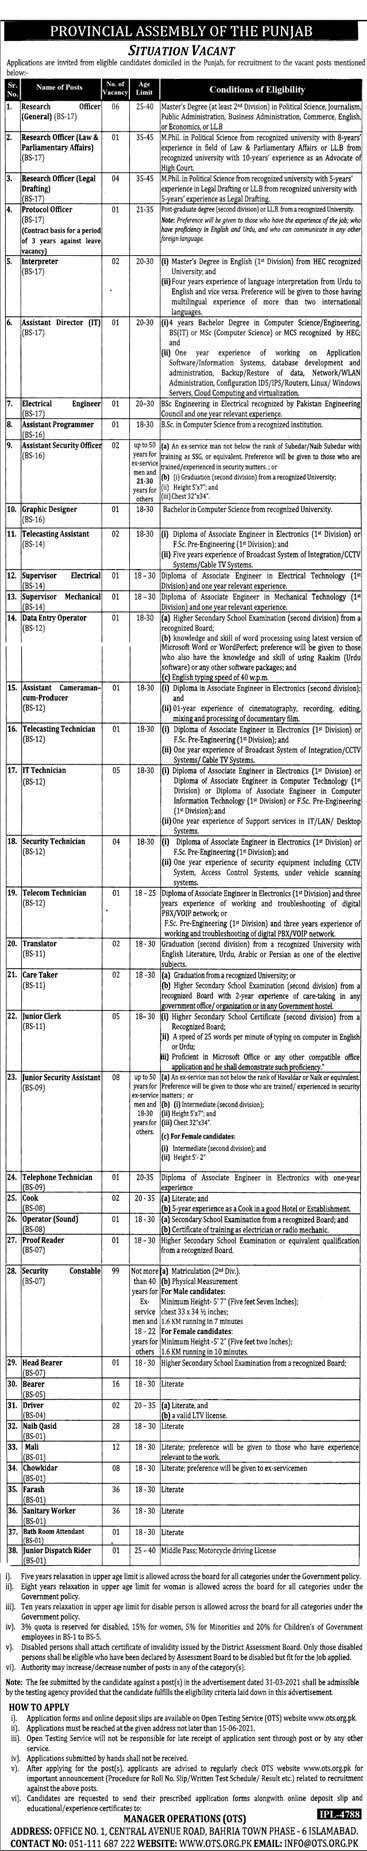 New Jobs in Provincial Assembly of Punjab OTS Jobs 2021 Age (18-50)  OTS Jobs in Punjab Assembly Pakistan - Apply online by www.newjobs.pk